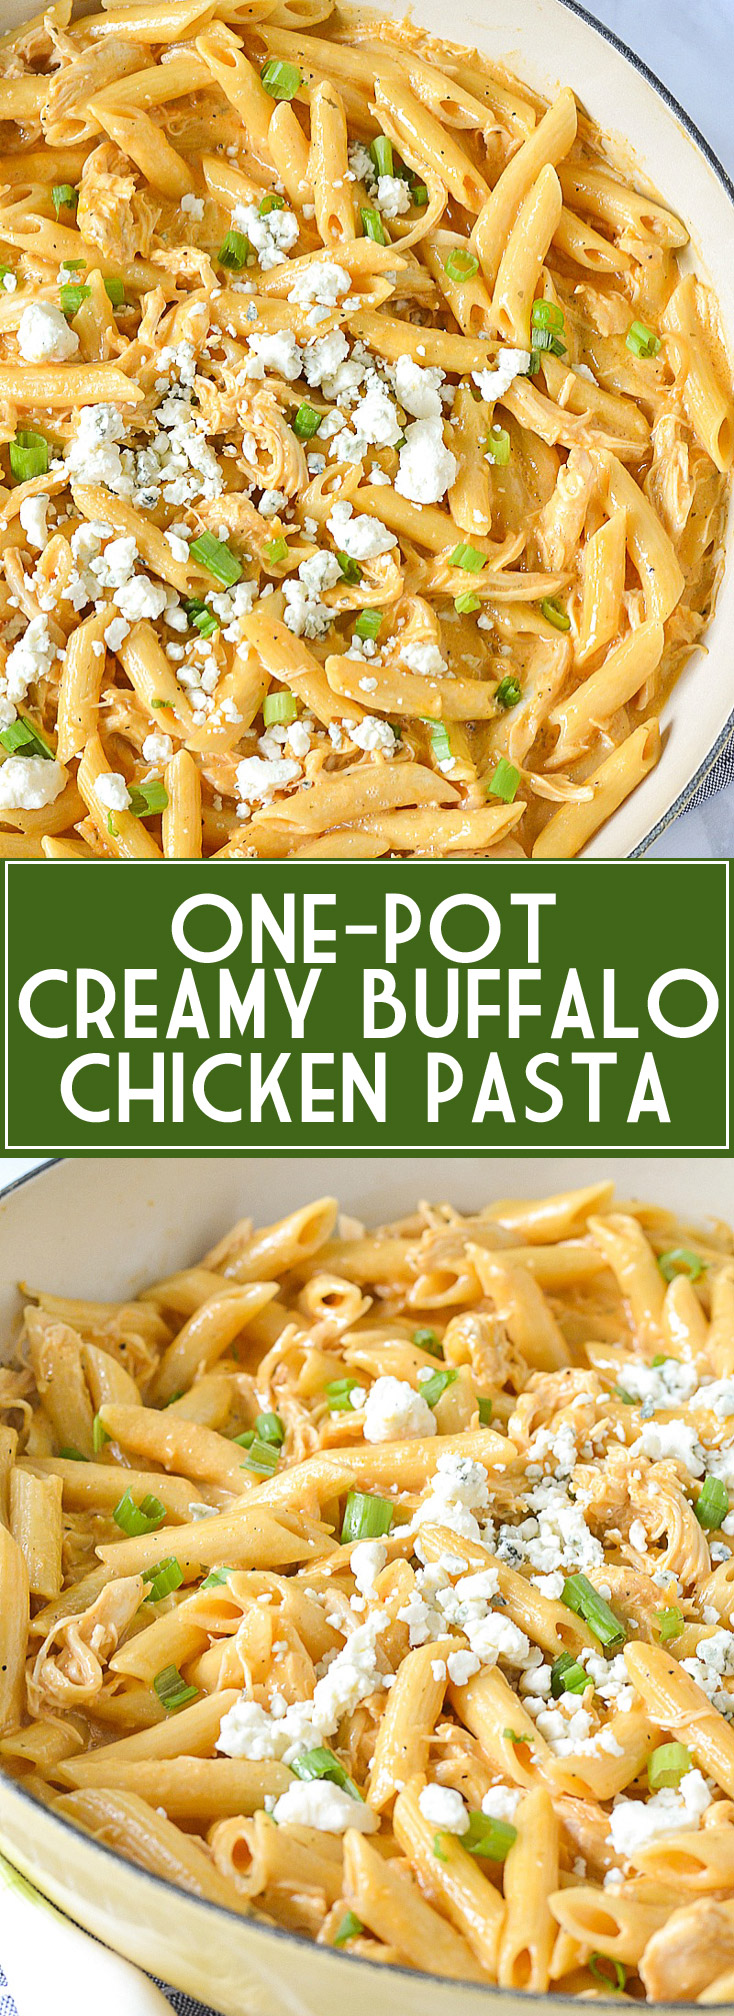 One-Pot Creamy Buffalo Chicken Pasta | www.motherthyme.com